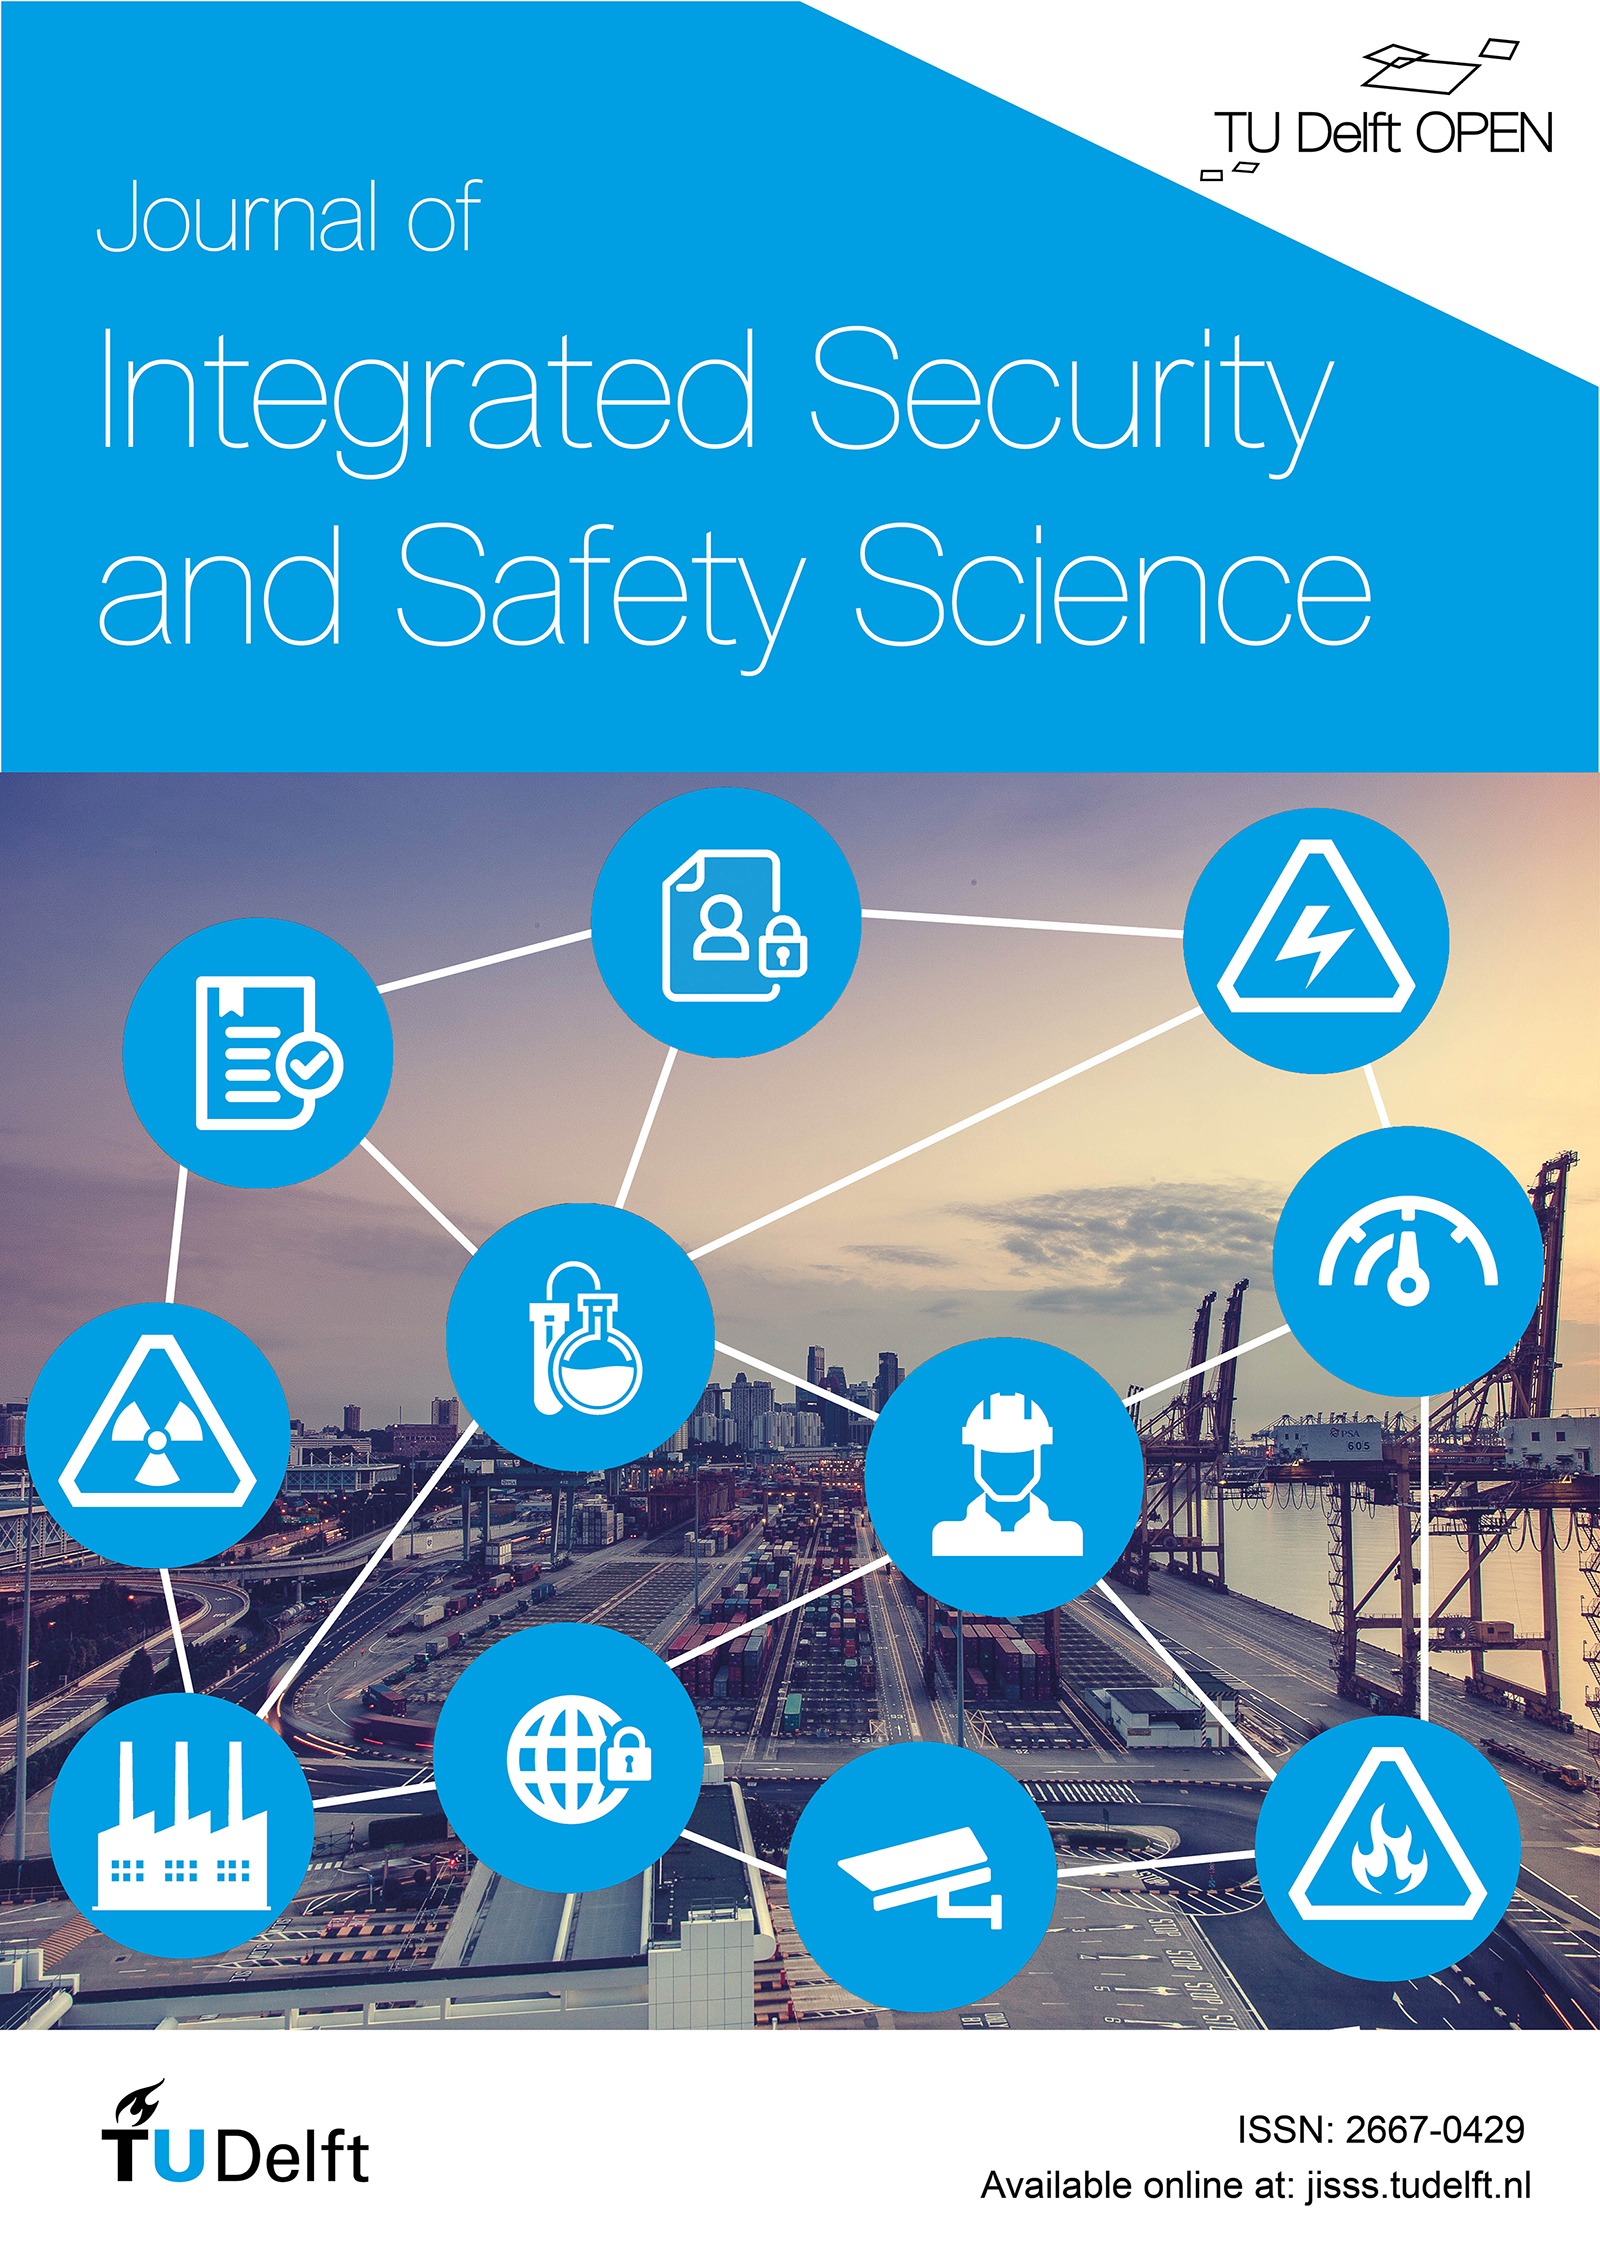 Image of the Journal of Integrated Security Science